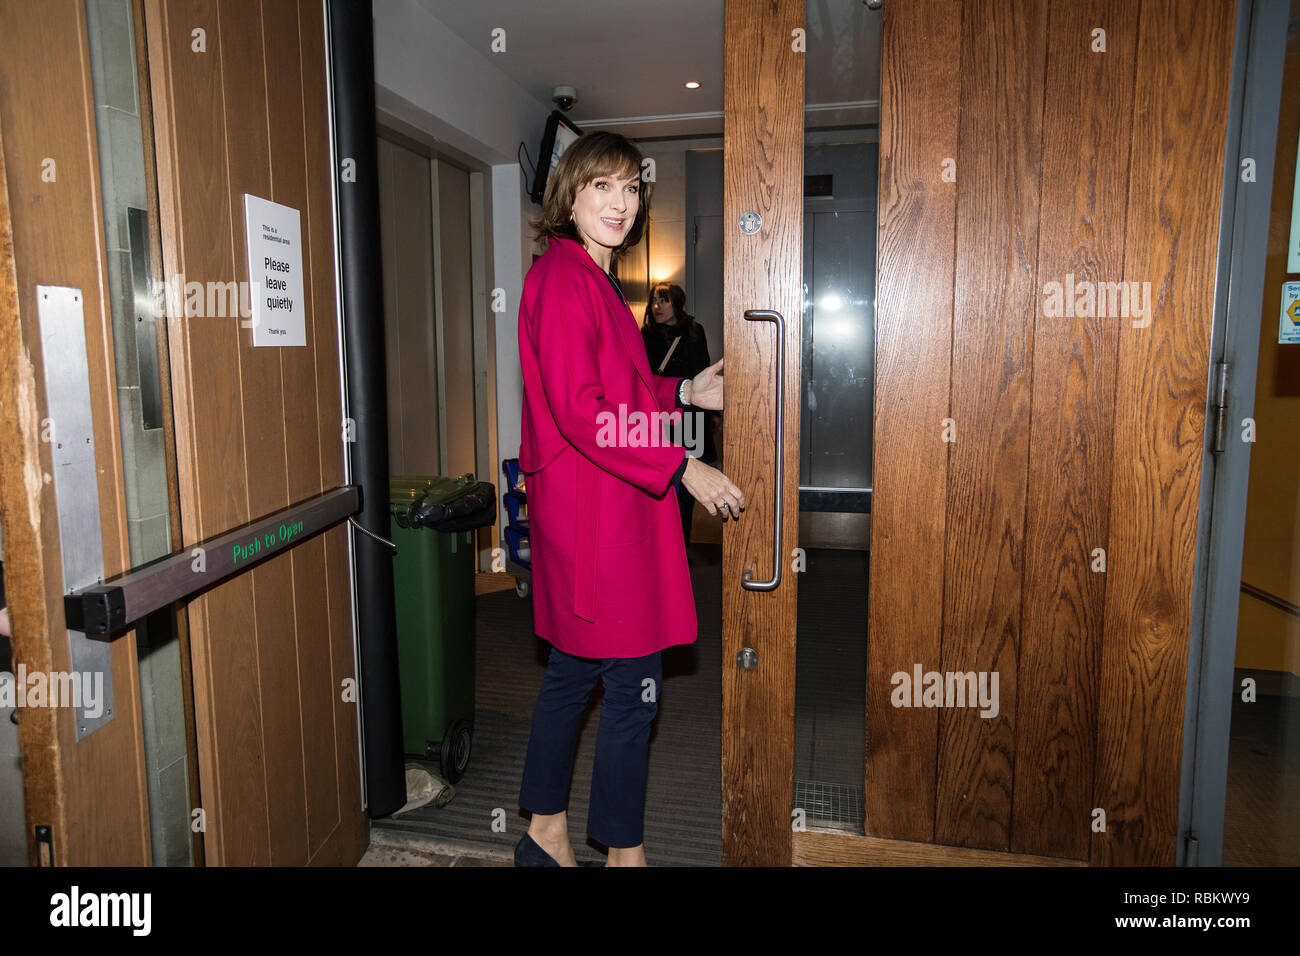 Saint Lukes Church, Old Street, London, UK. 10th Jan, 2019. Fiona Bruce arrives at the venue to present her first recording of Question Time. Fiona Bruce became the first female to present the show replacing David Dimbleby after the broadcaster stepped down from the debate show after 25 years., England, UK Credit: Jeff Gilbert/Alamy Live News - Stock Image